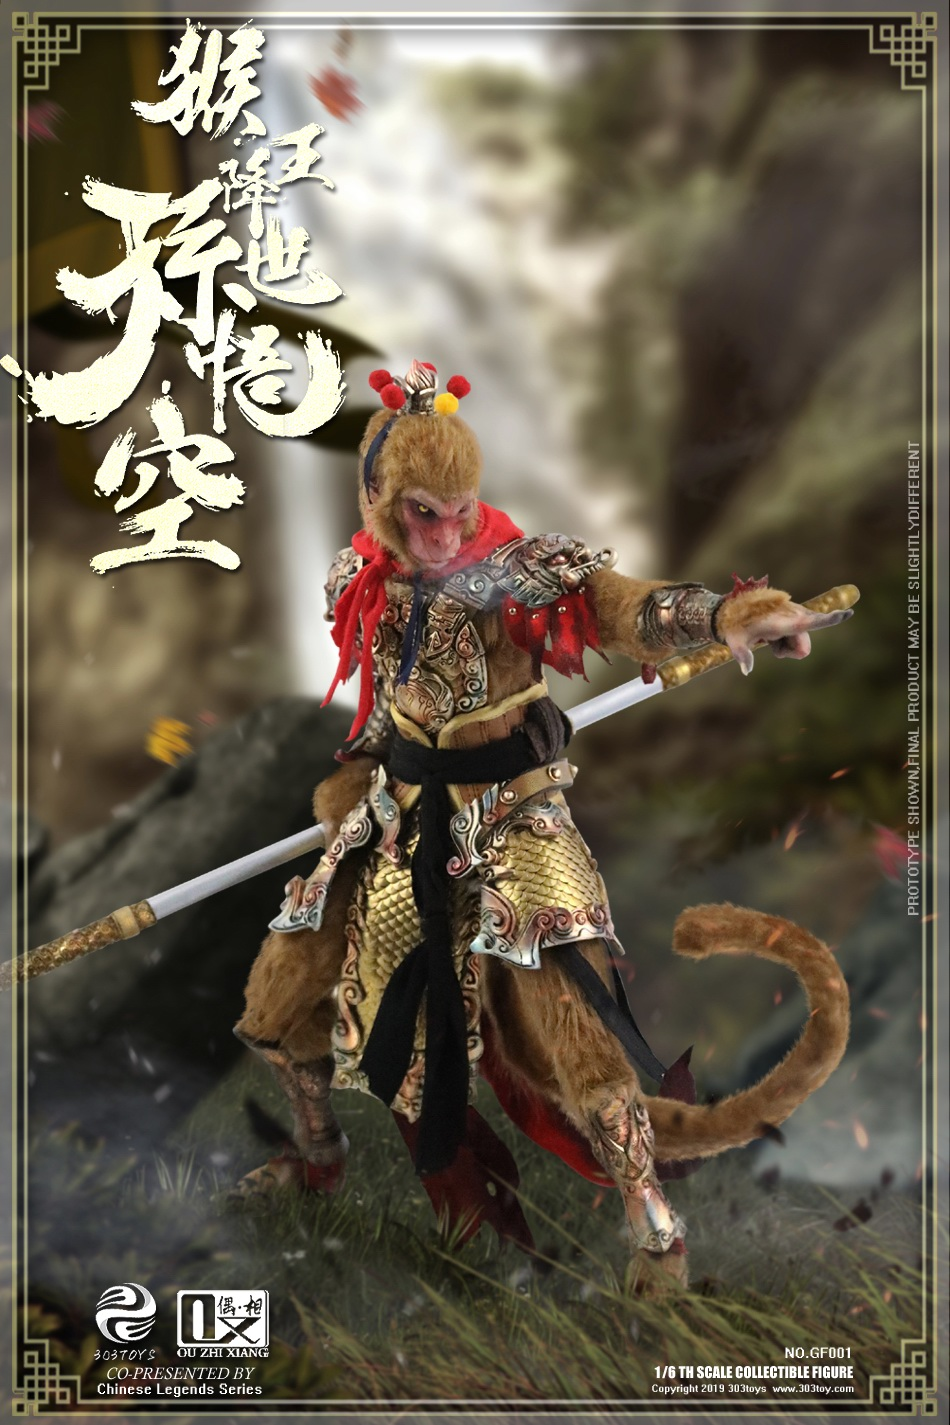 Mythology - NEW PRODUCT: 303TOYS x Evening phase: 1/6 National Wind Legend Series - Sun Wukong Monkey King Apocalypse & Dasheng Qitian & Stepping 18065410